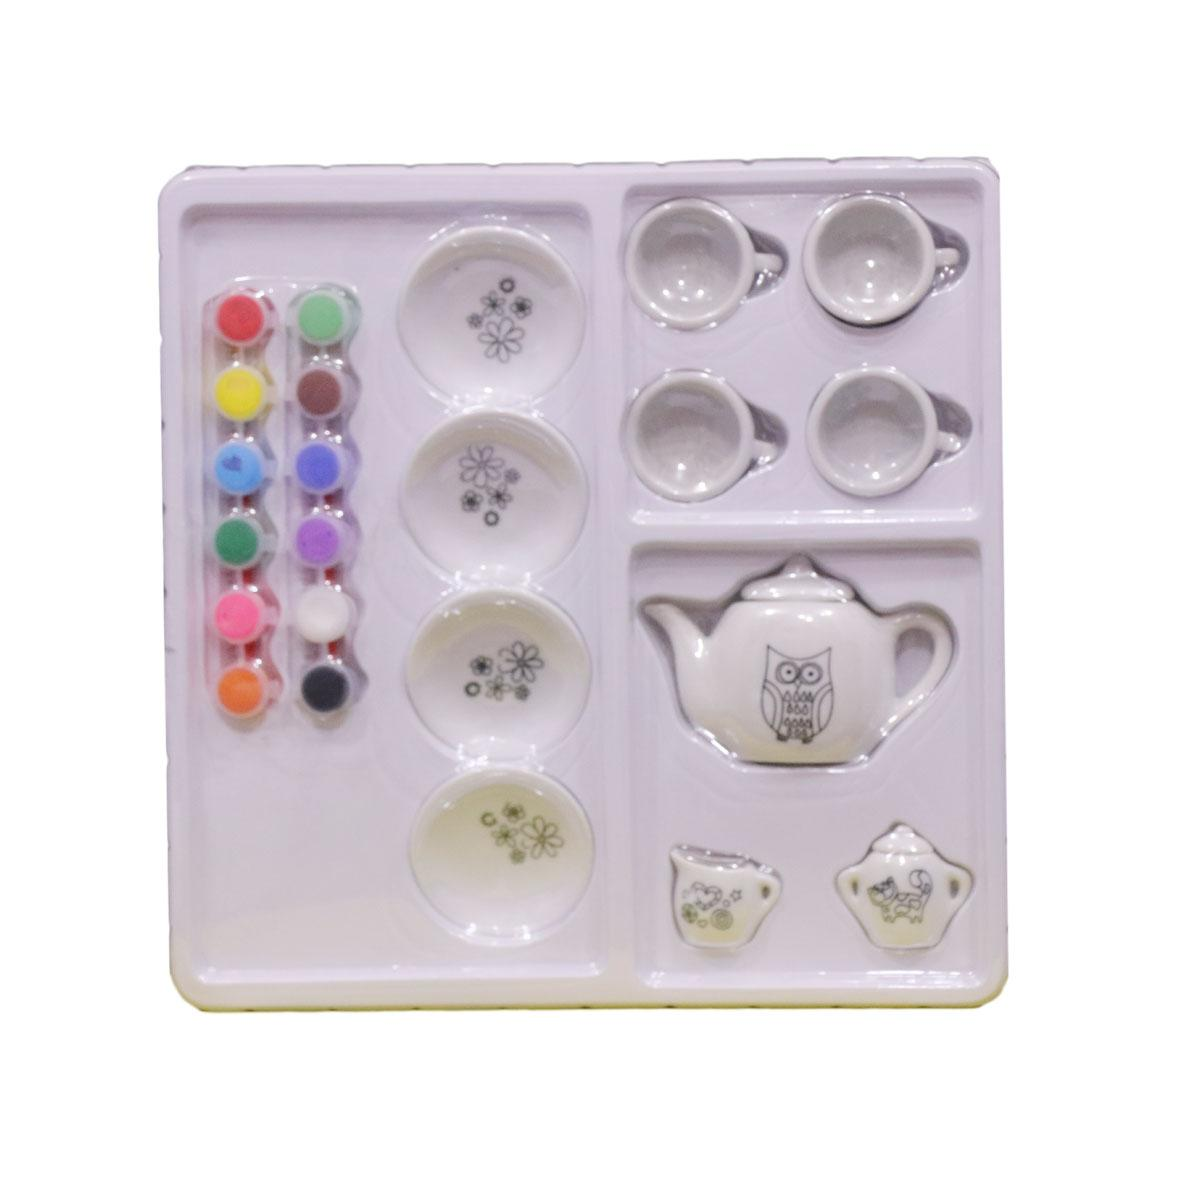 Diy Kitchen Ceramic Tea Set For Kids With Painting Colors Buy Online At Best Prices In Pakistan Daraz Pk